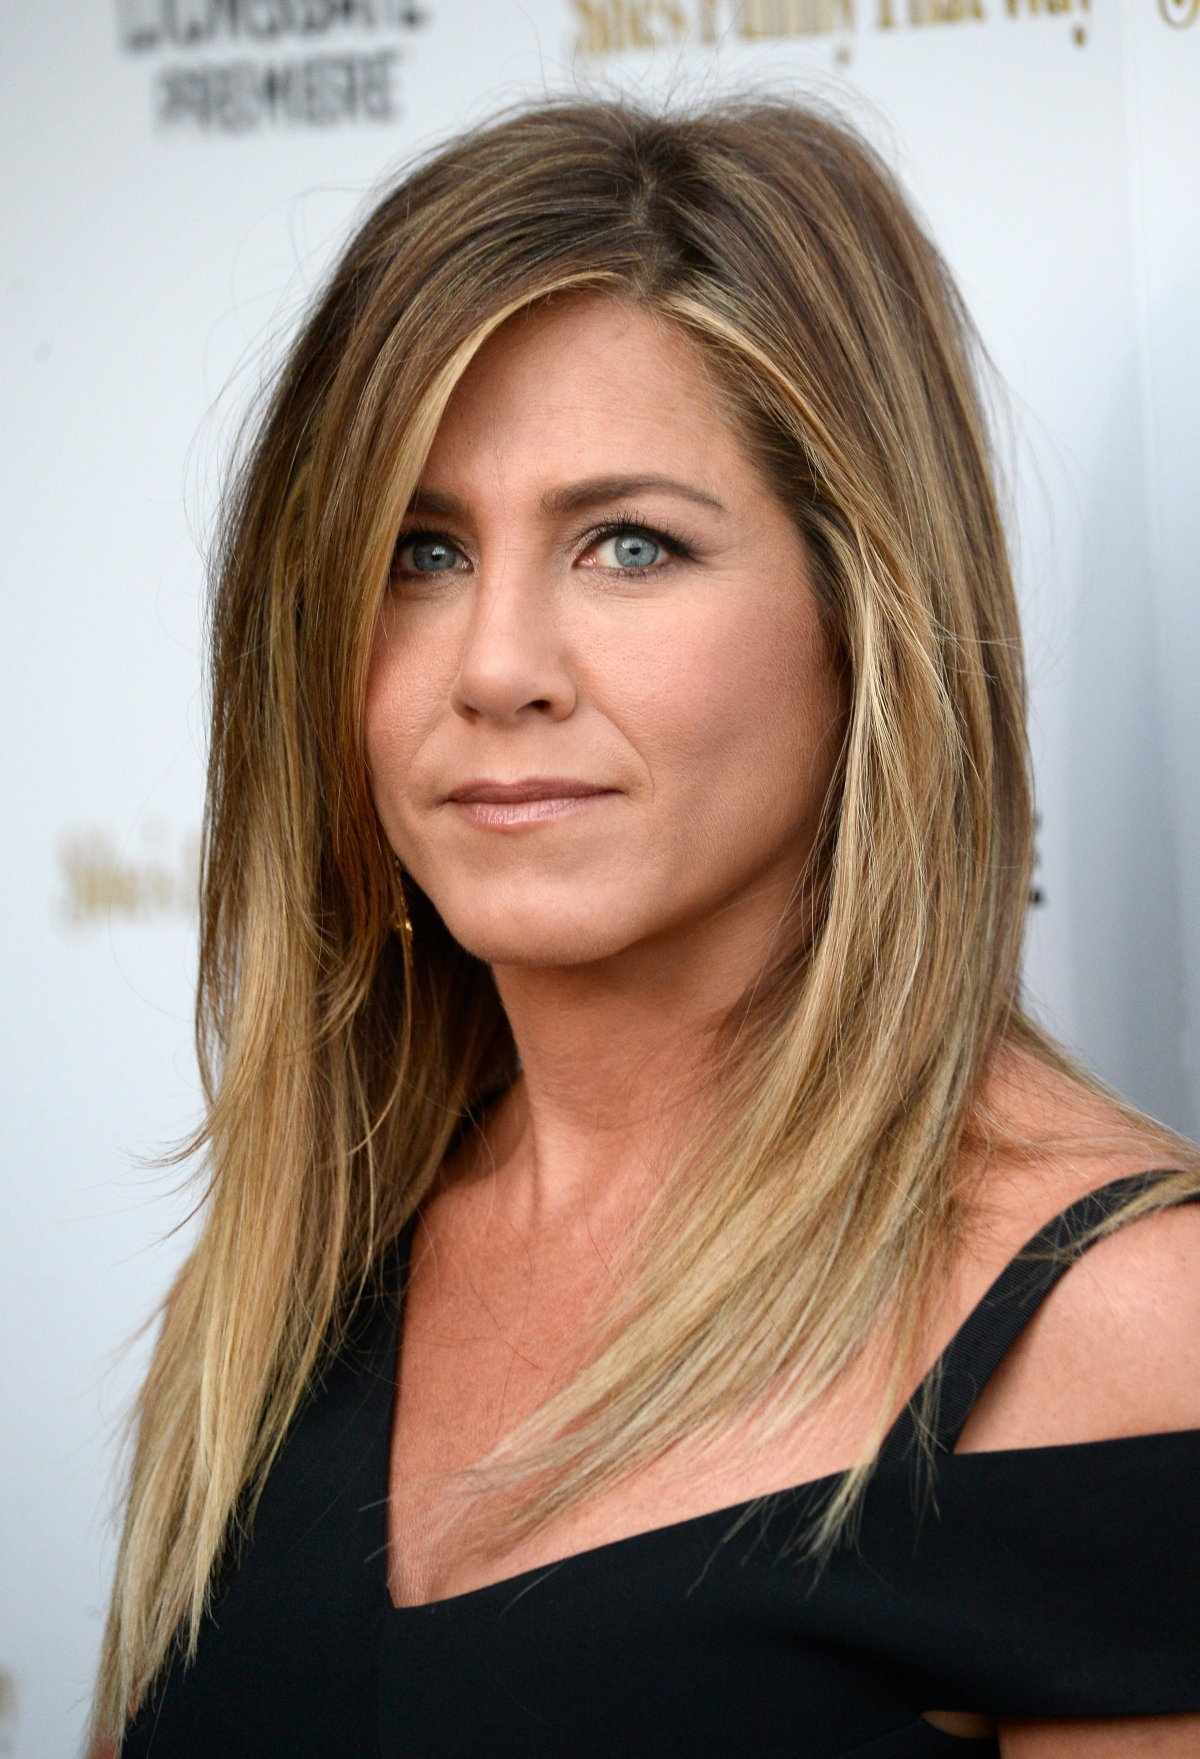 Jennifer Aniston's Snapchat debut photo is gorgeous